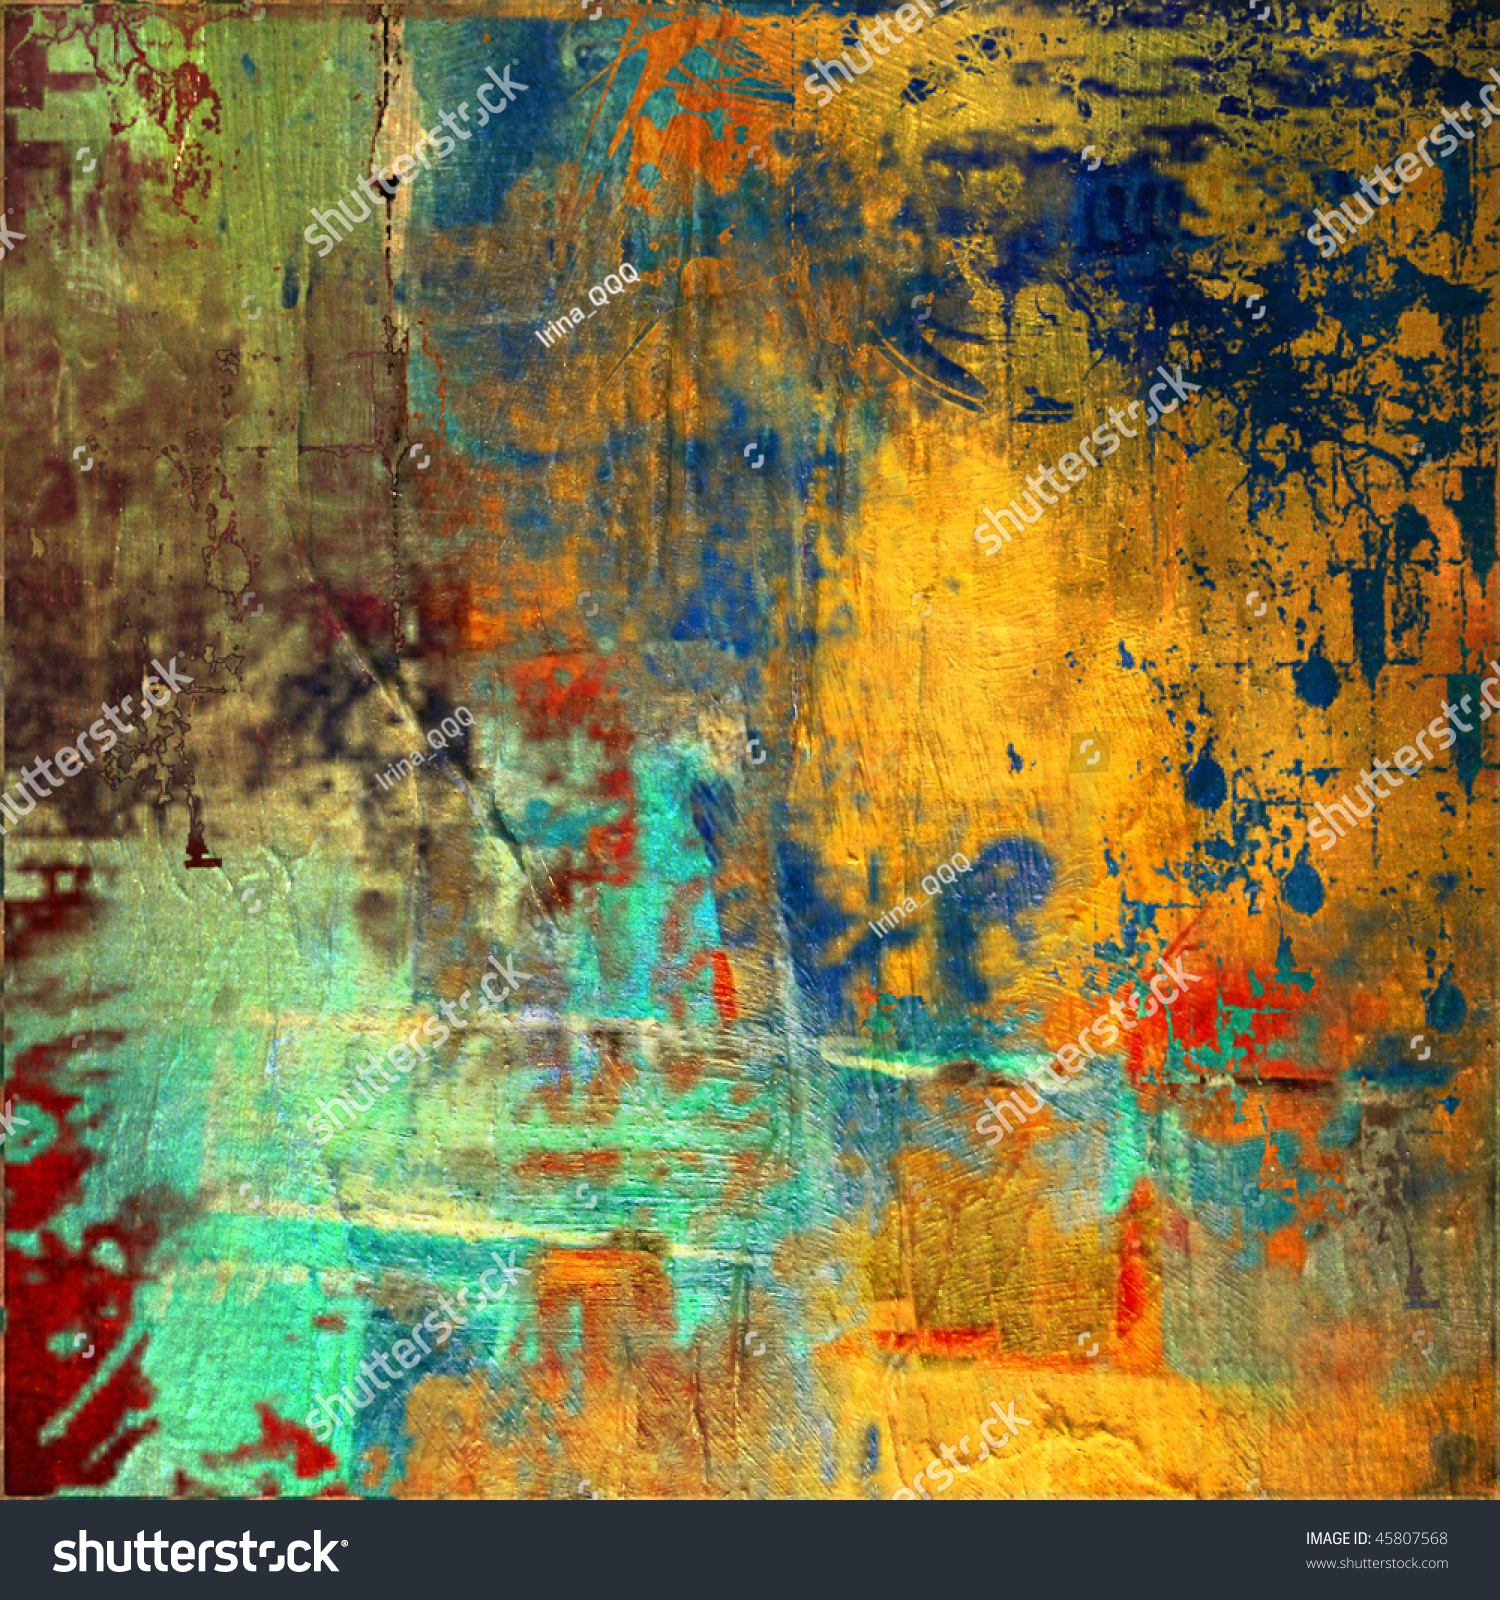 Art colorful grunge vibrant painted background stock - Vibrant background ...